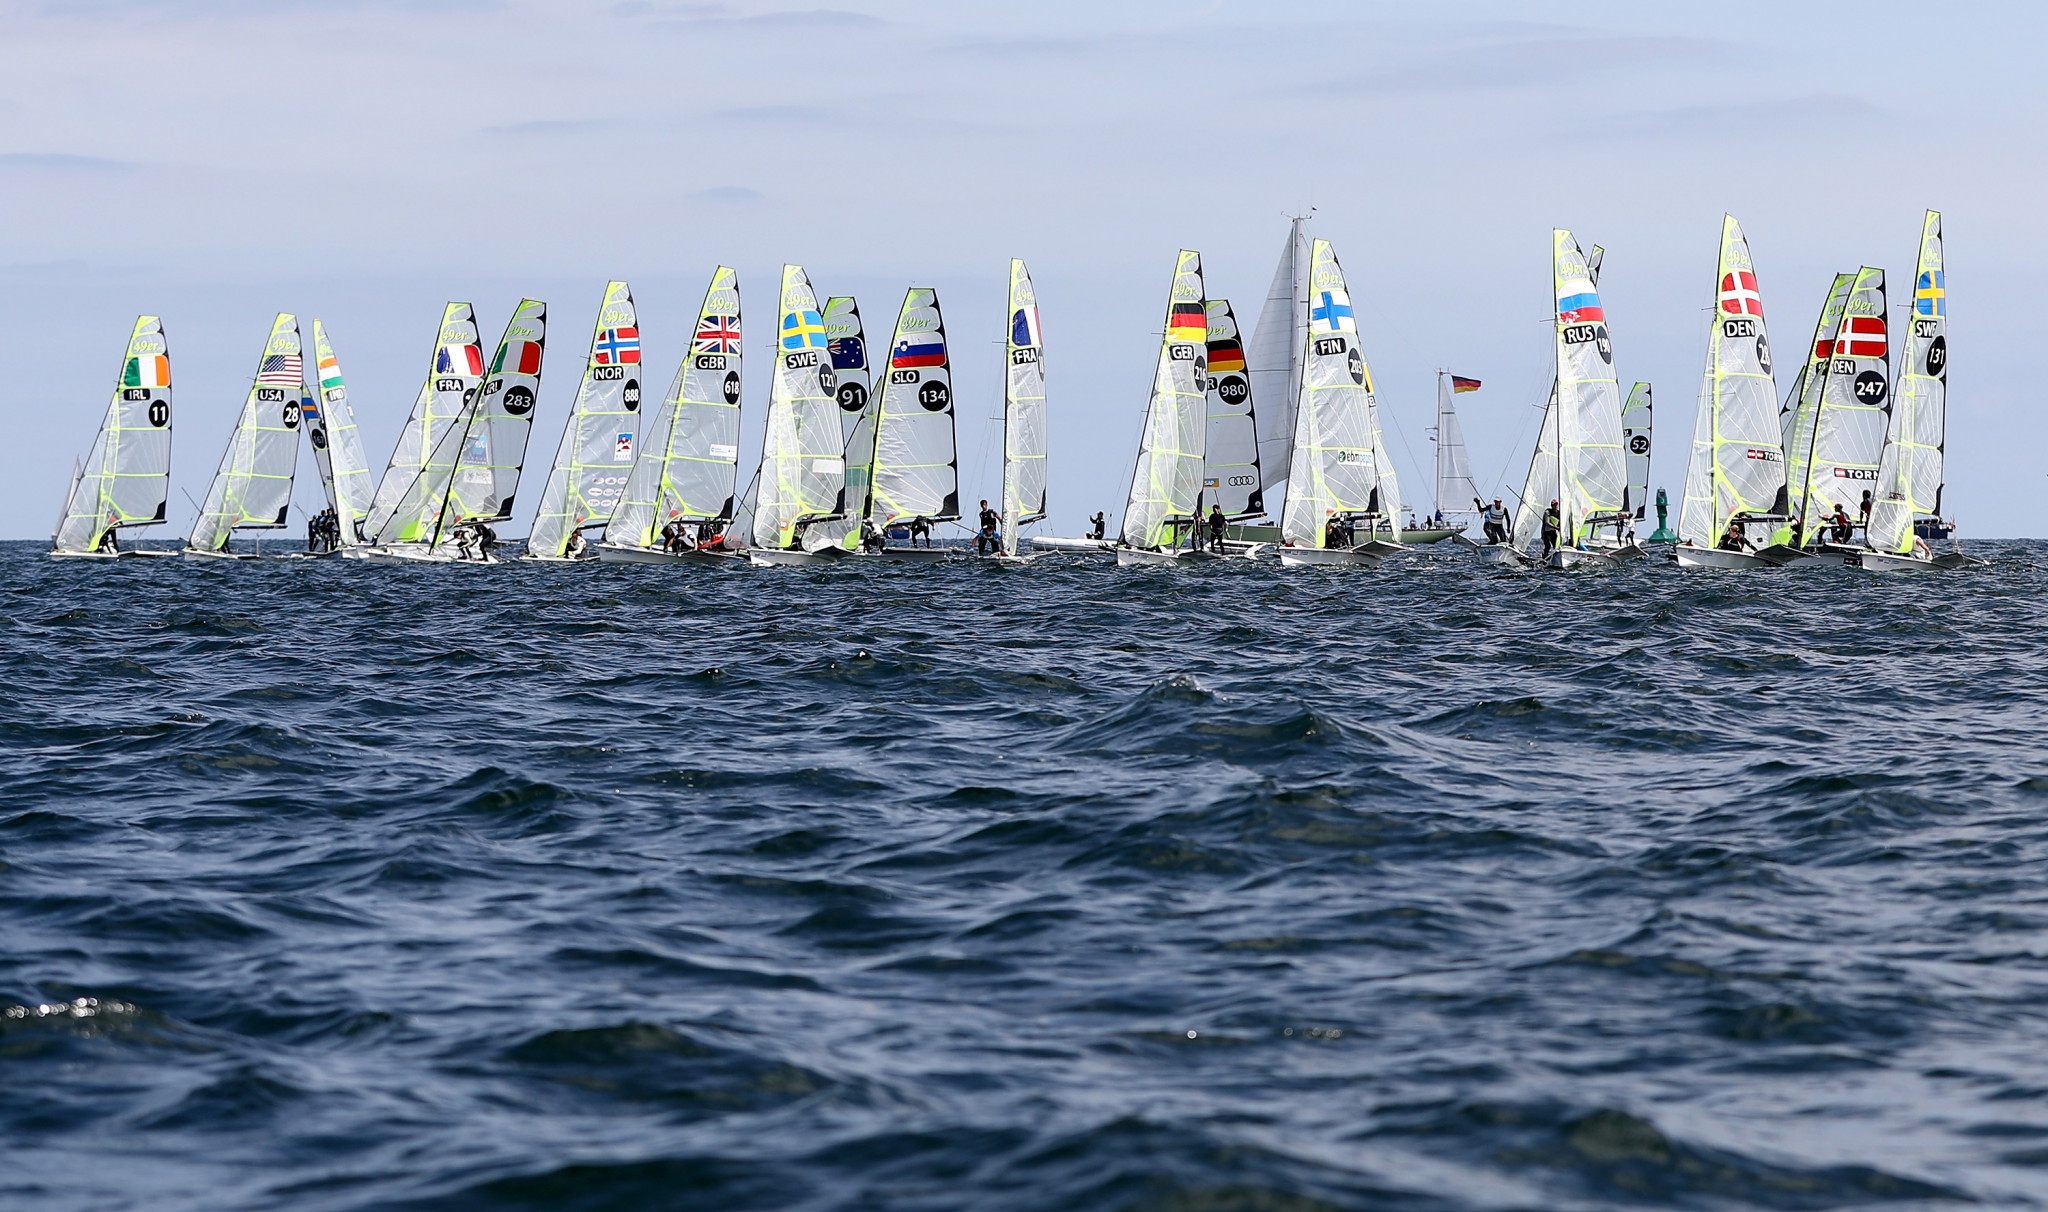 Gdynia is awarded 2018 European Sailing Championships for 49er, 49erFX, and Nacra 17 classes